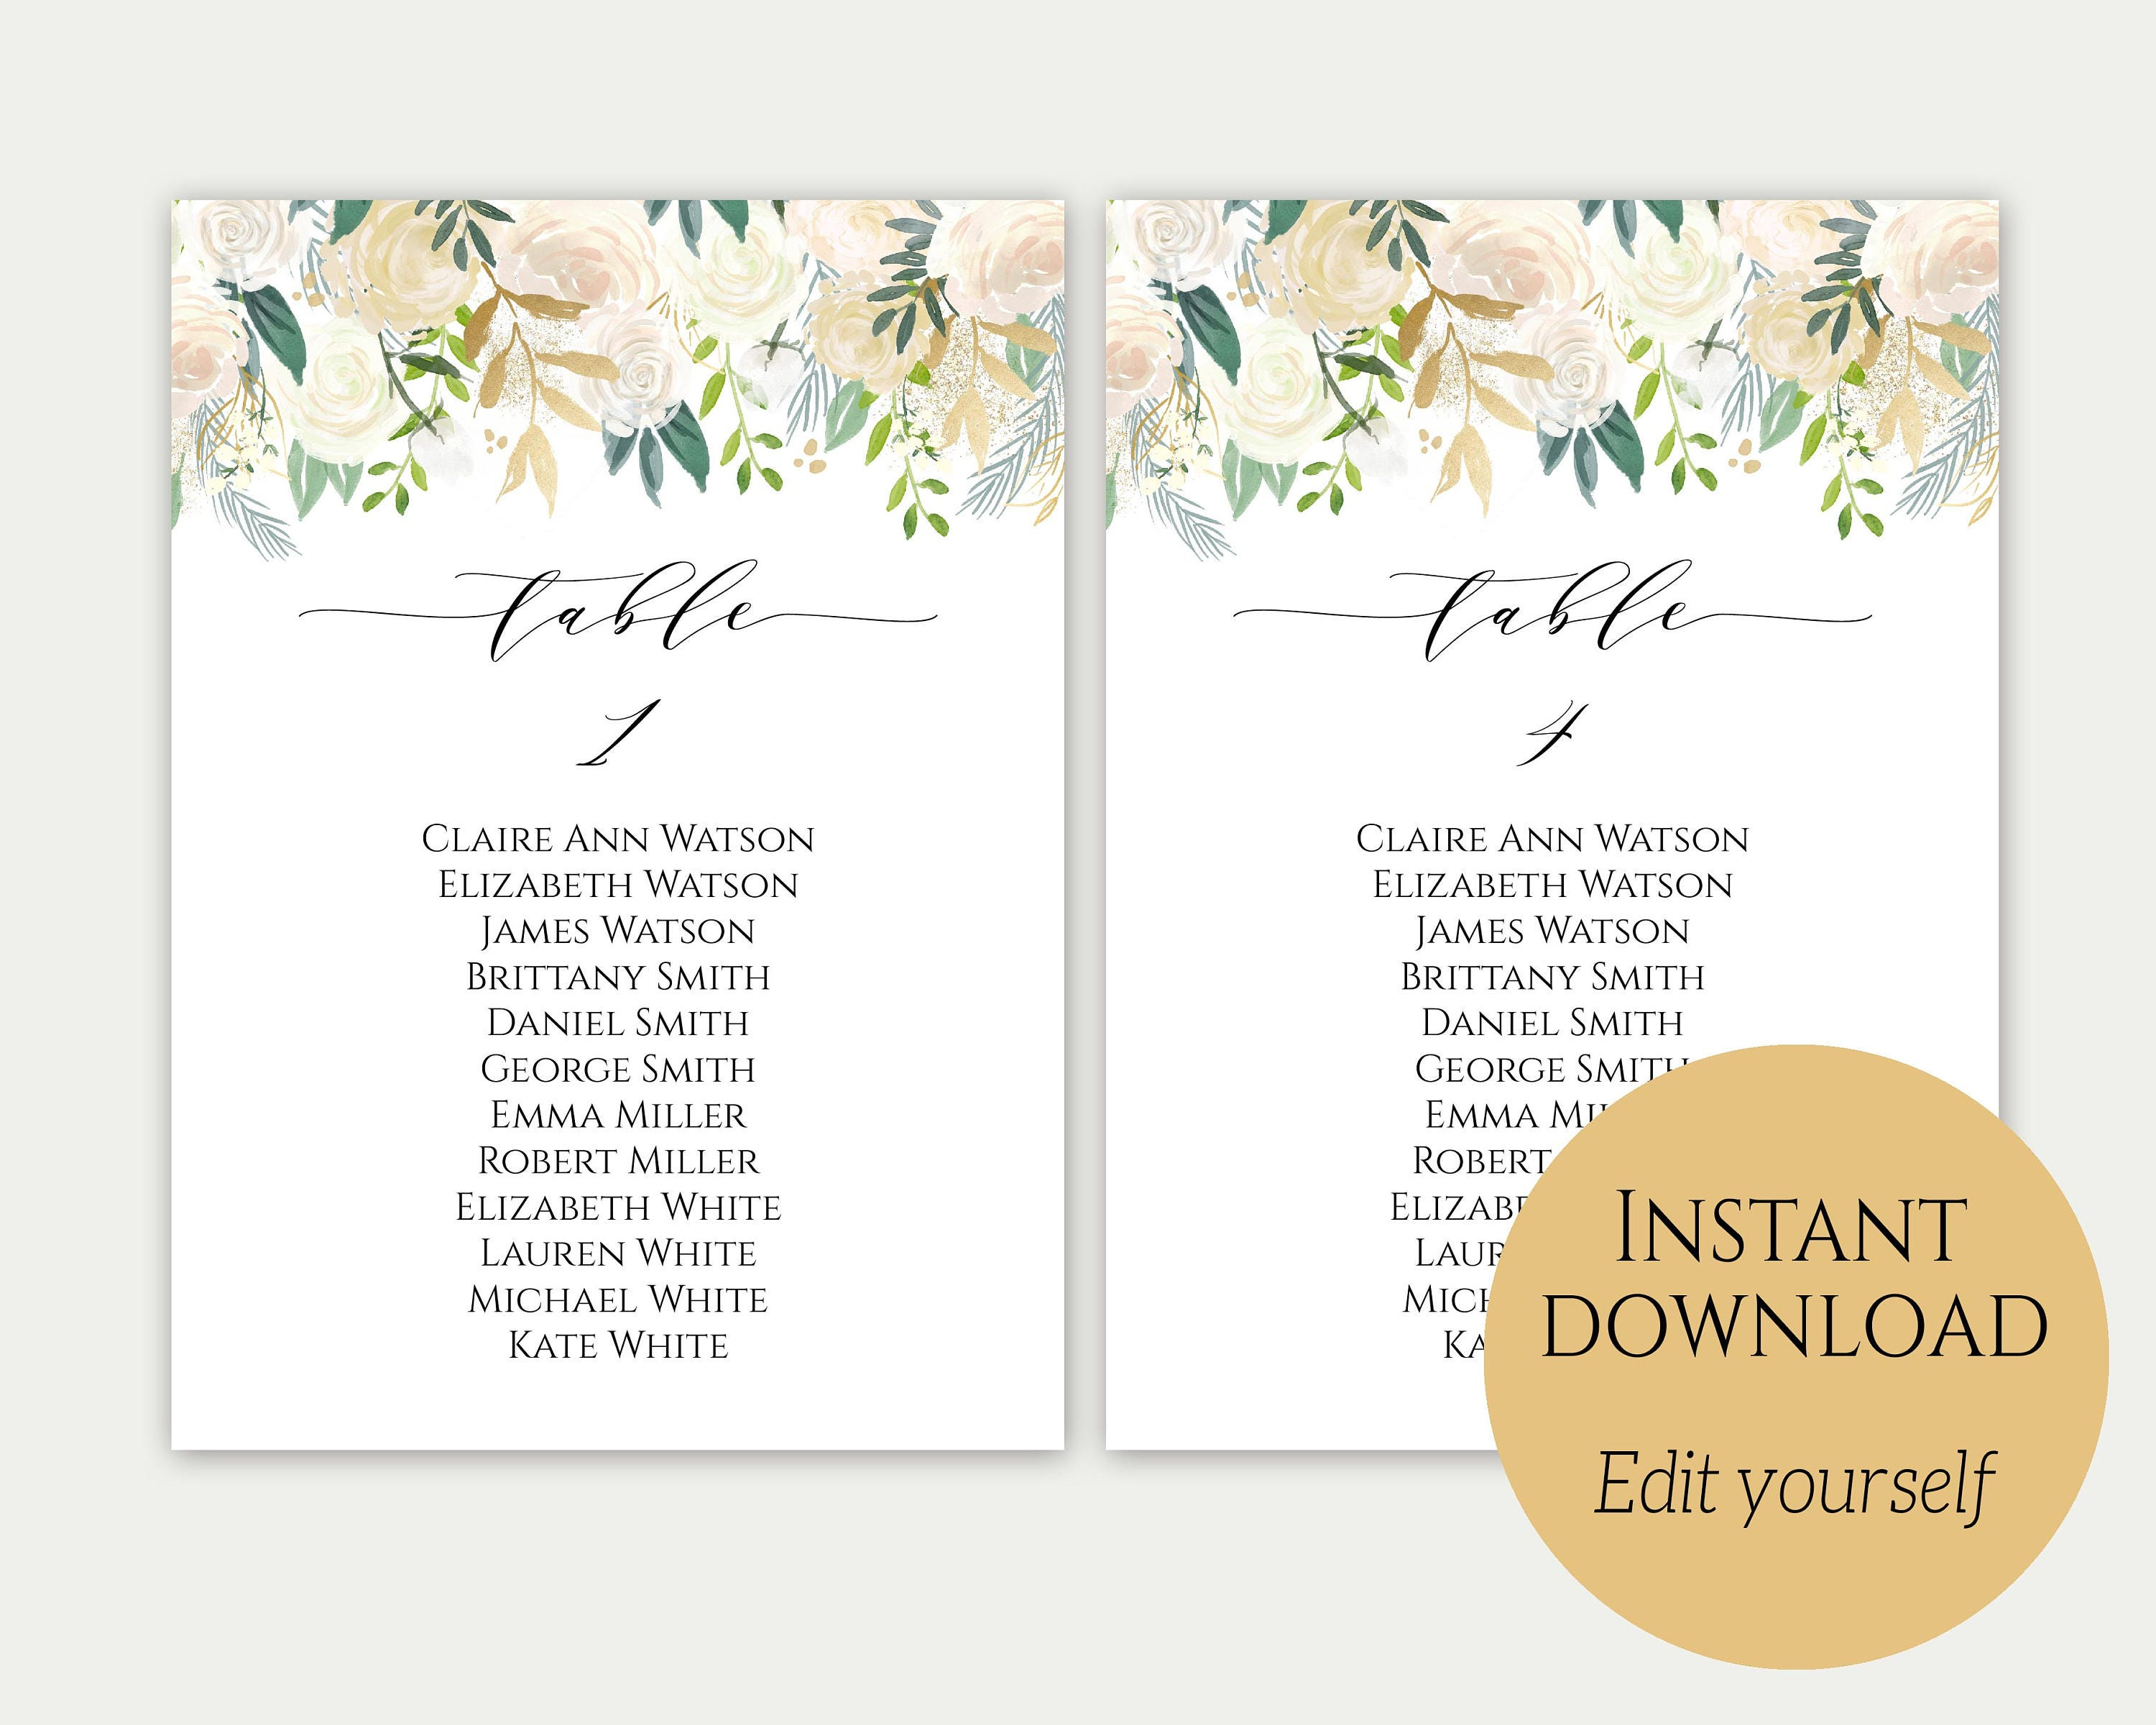 Wedding seating chart template seating cards gold seating cards wedding seating chart template seating cards gold seating cards seating chart template maxwellsz